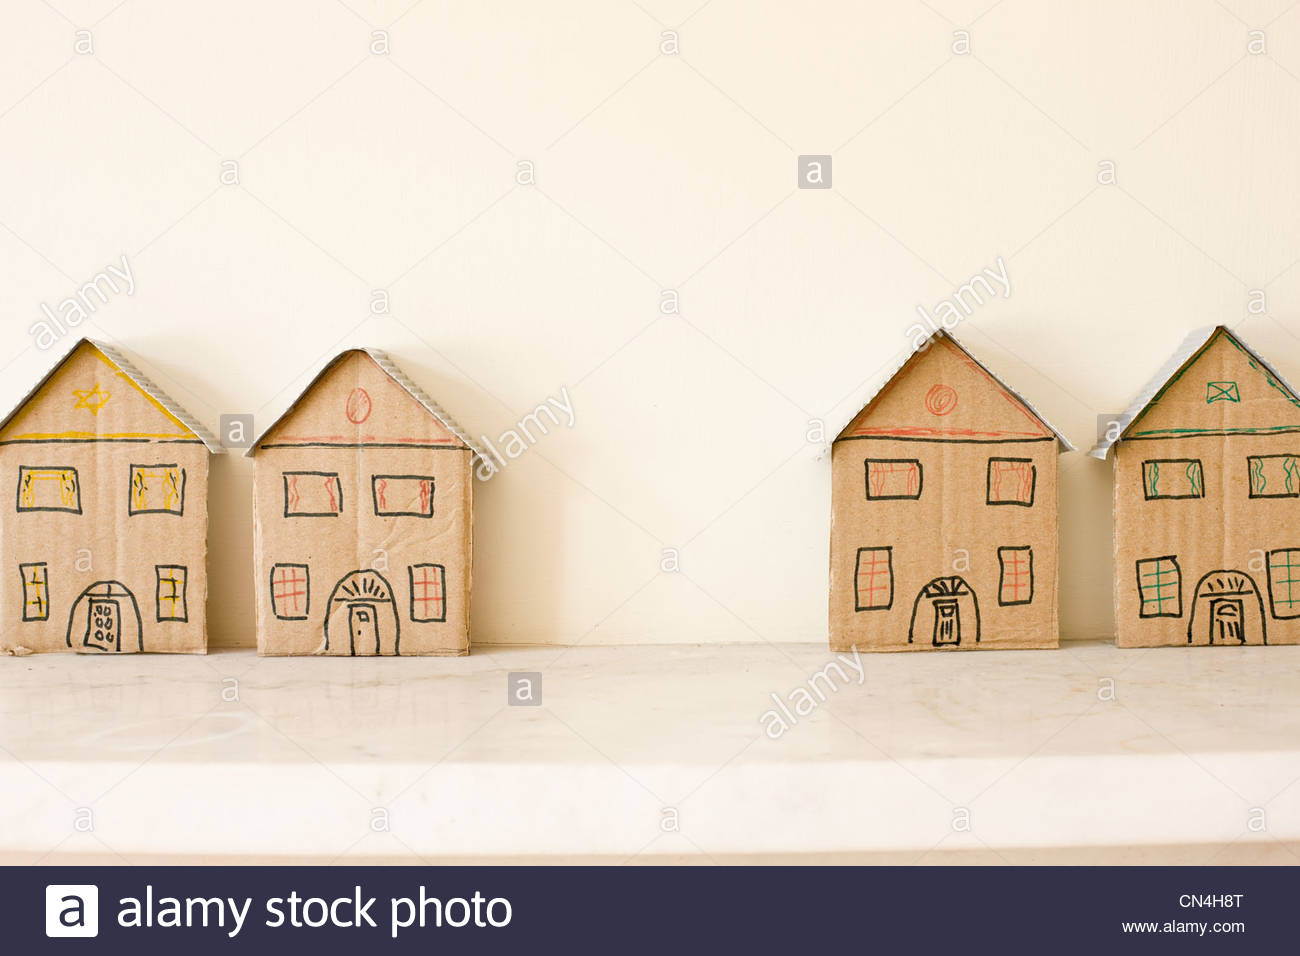 Two pairs of detached model houses - Stock Image